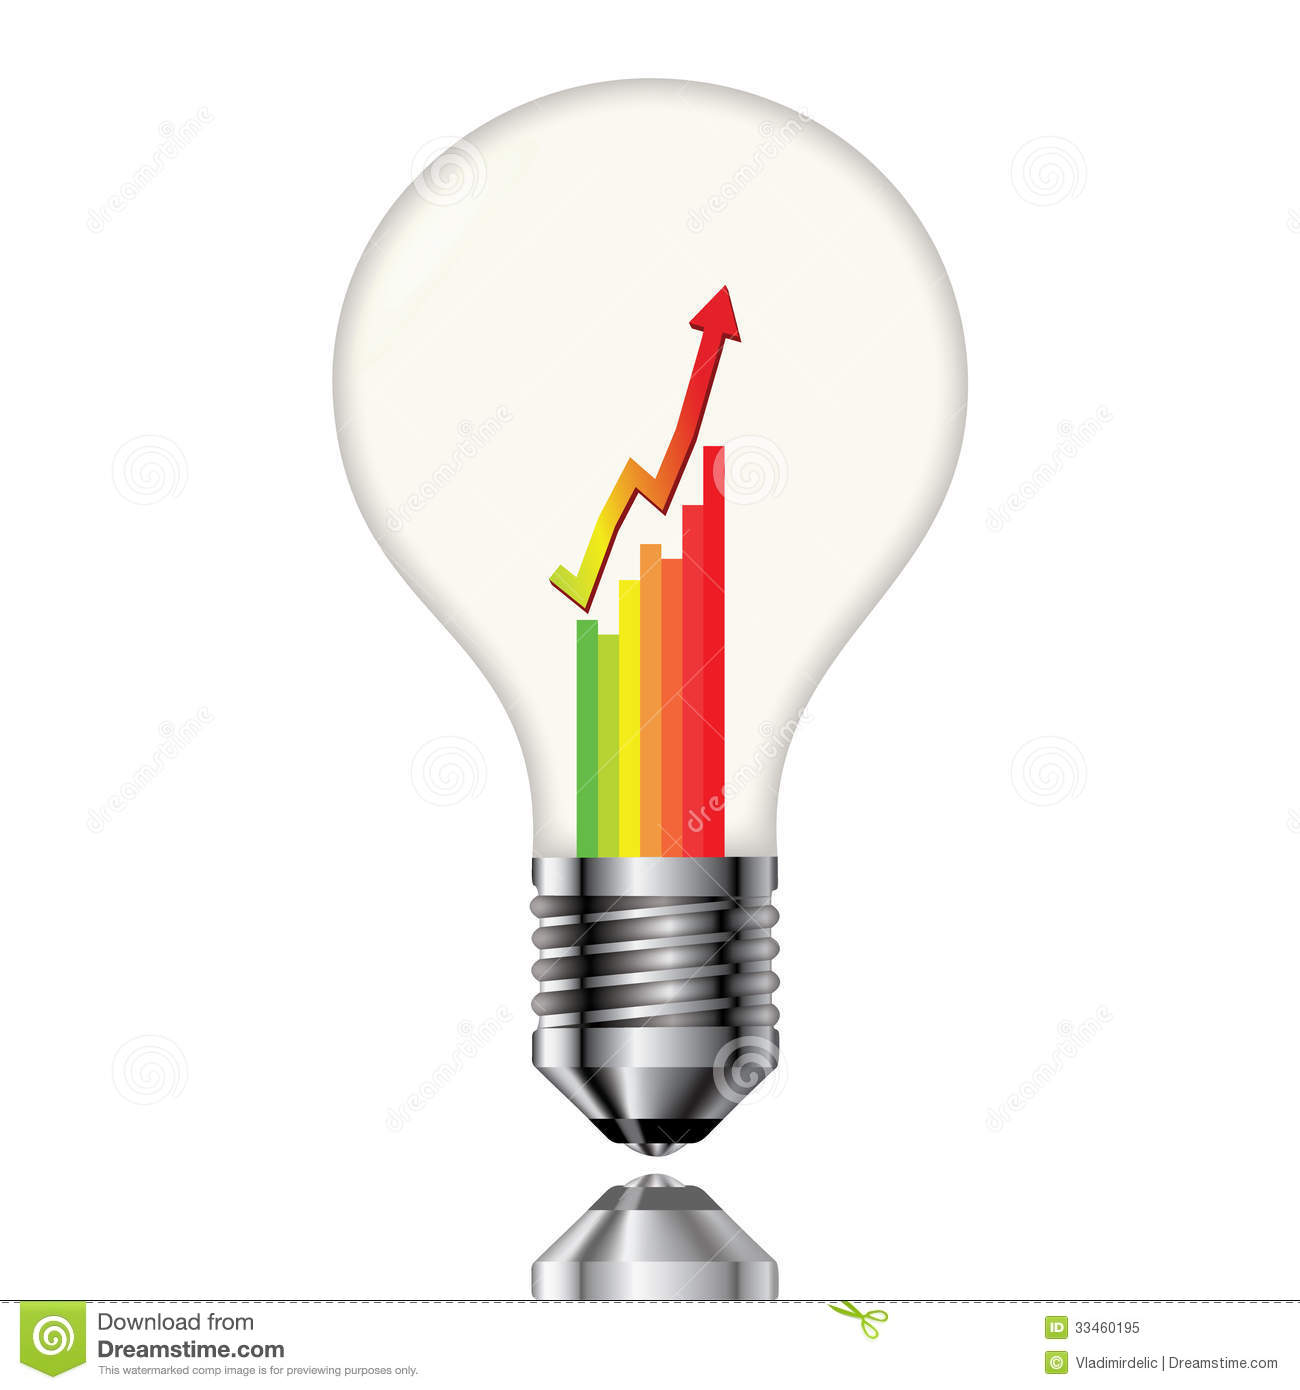 Bulb with a chart